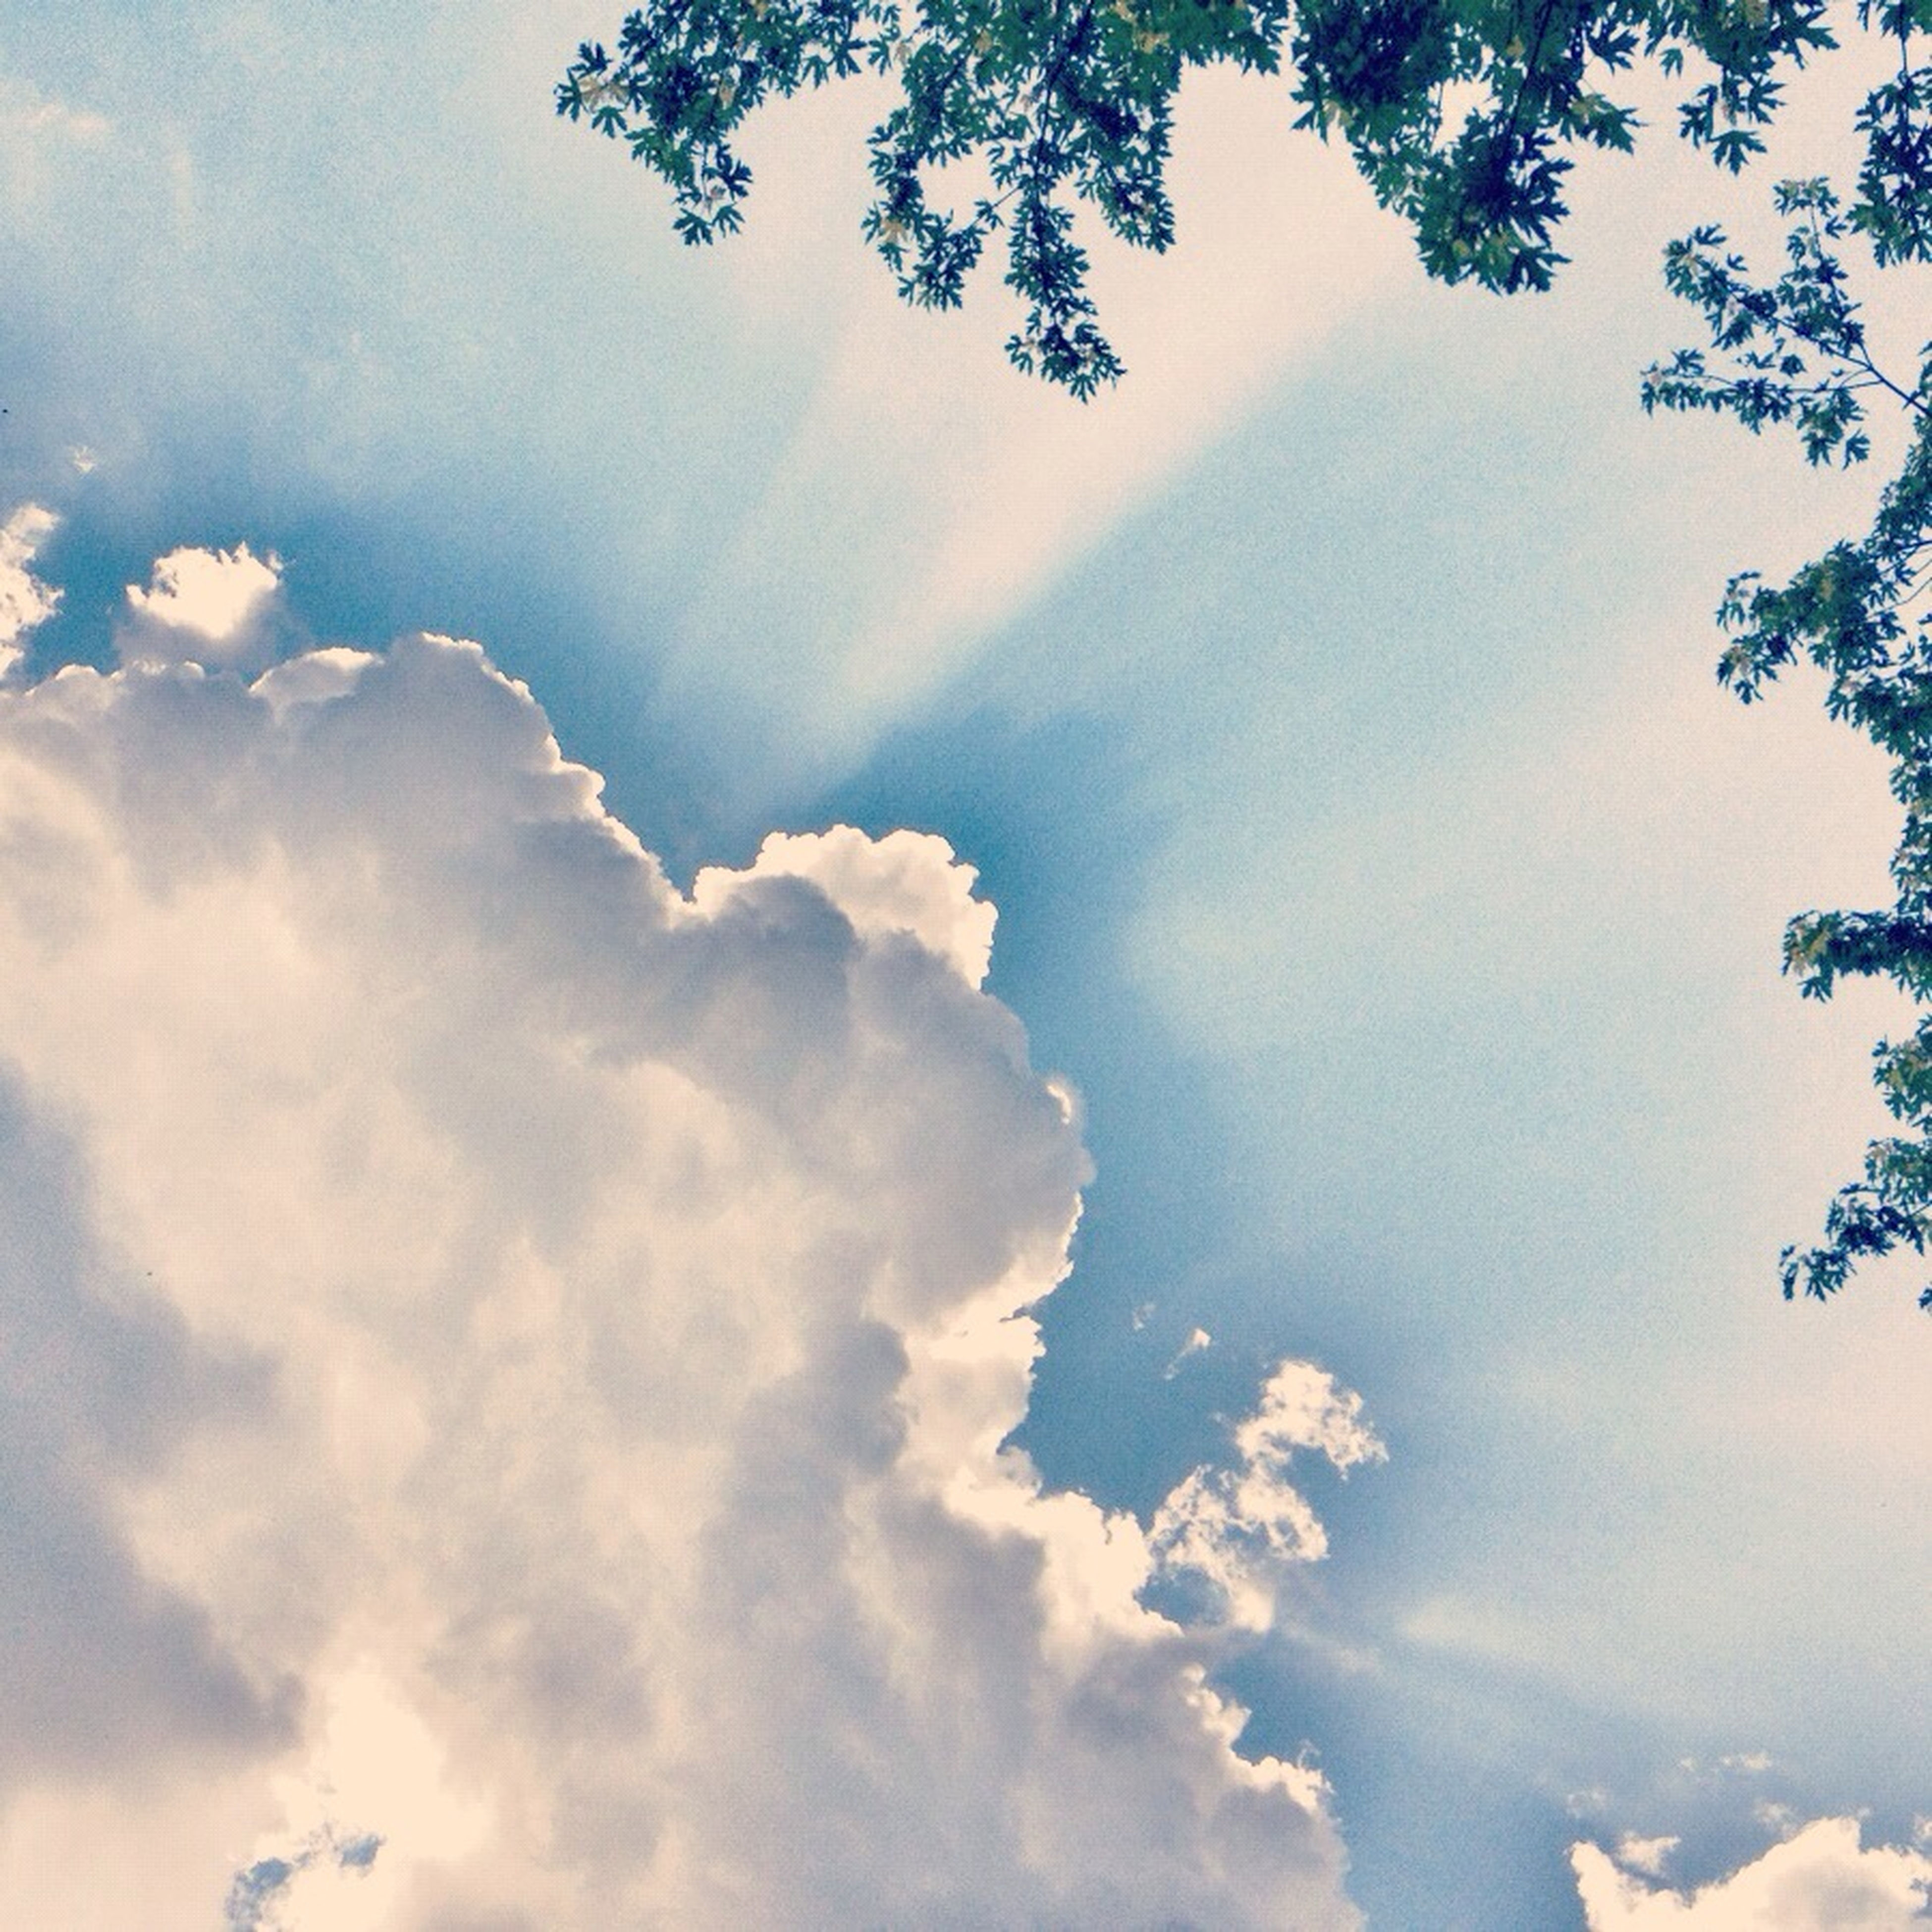 sky, low angle view, beauty in nature, cloud - sky, tranquility, scenics, nature, tranquil scene, tree, cloudy, sunbeam, sky only, sunlight, idyllic, cloud, blue, cloudscape, outdoors, backgrounds, day